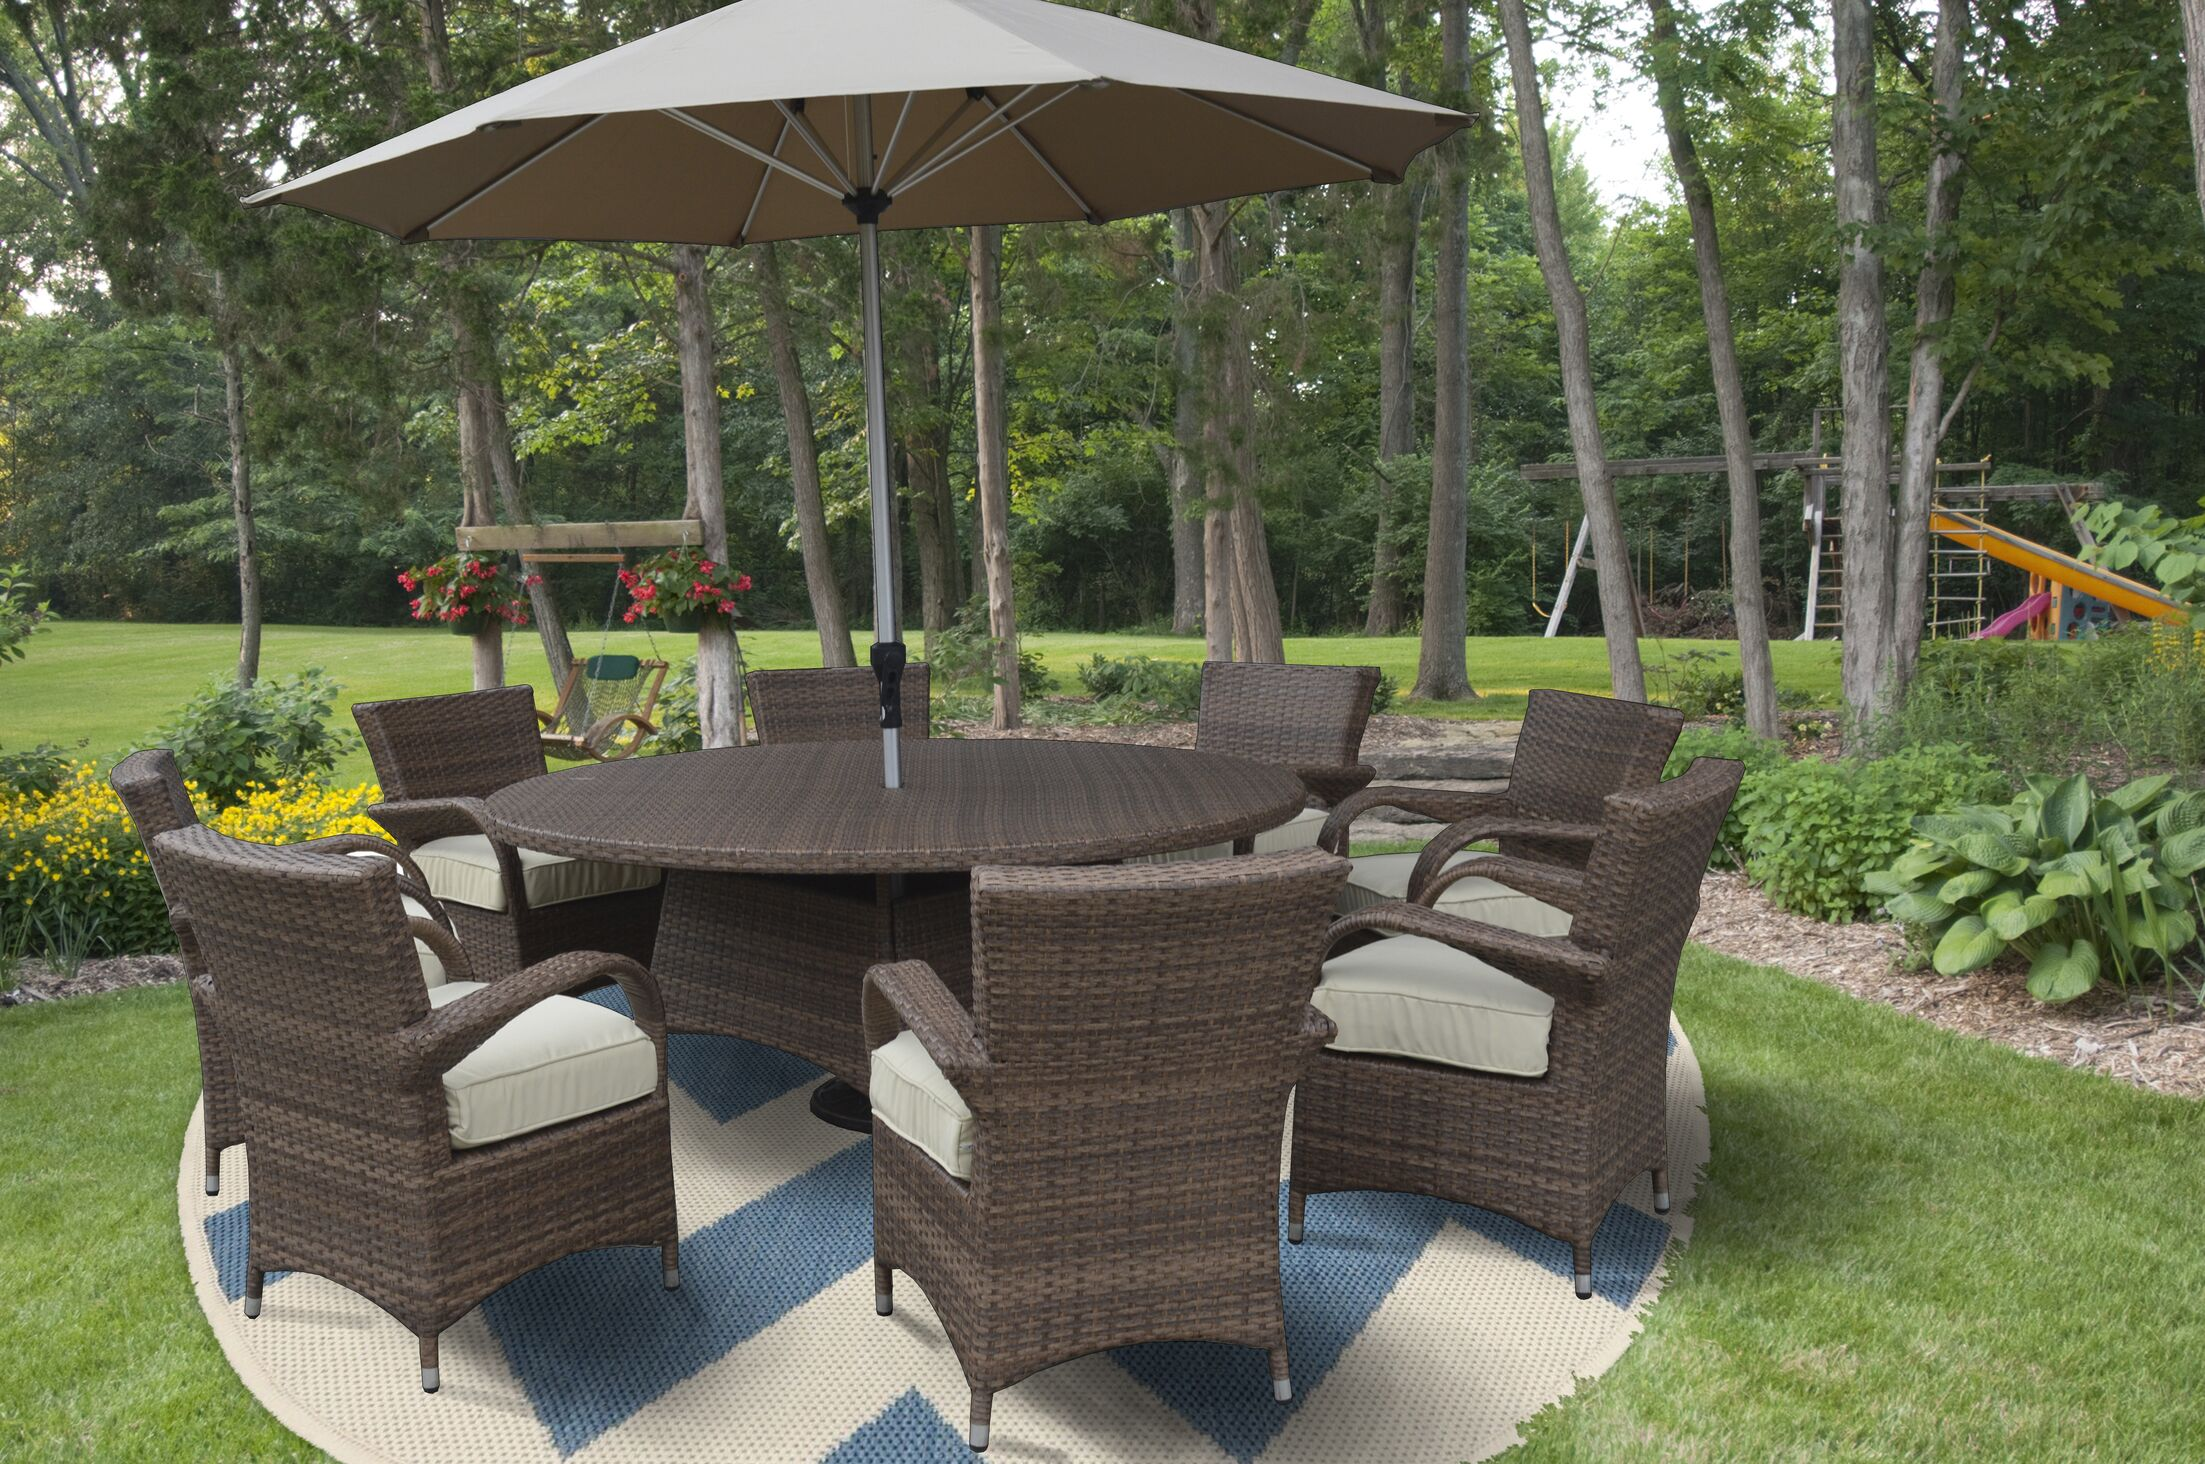 Fontinella Premium and Lush Complete 10 Piece Dining Set with Cushions/ with Umbrella